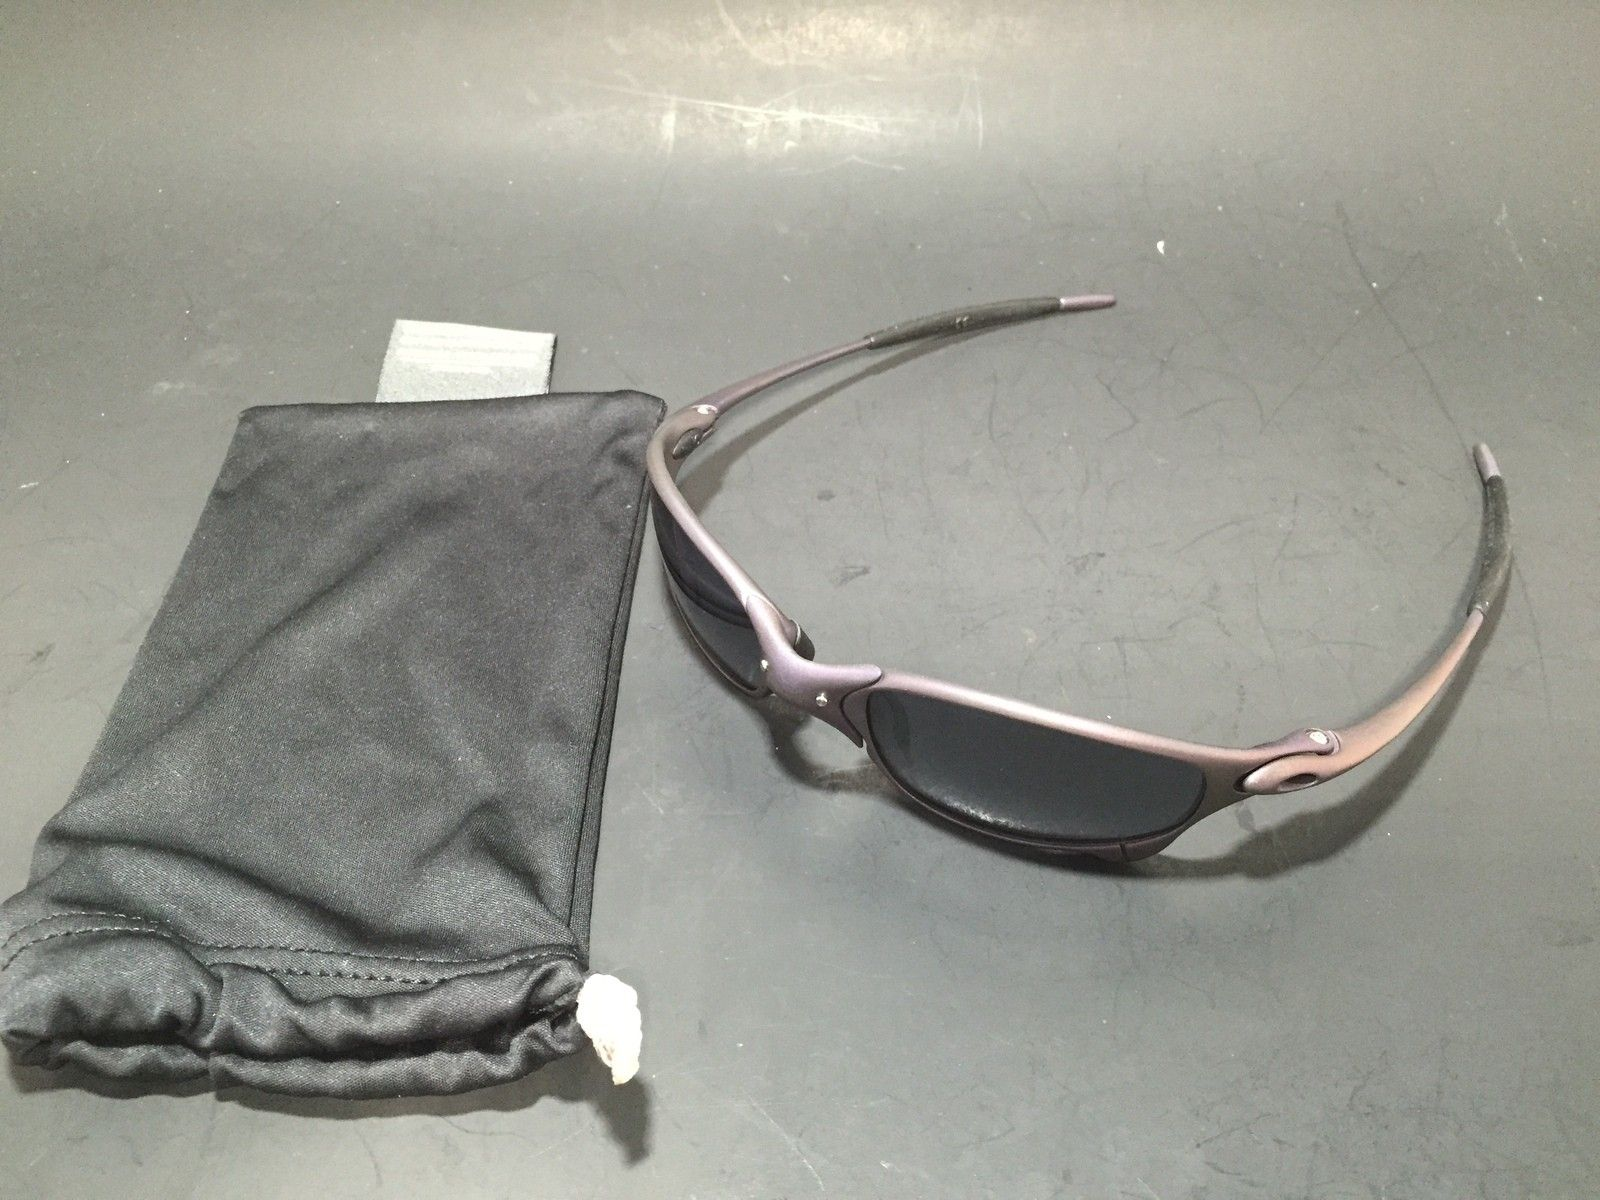 Anodized Juliet X-Metal Finish Purple w/ Brand New OEM Black Lenses - IMG_1736.JPG